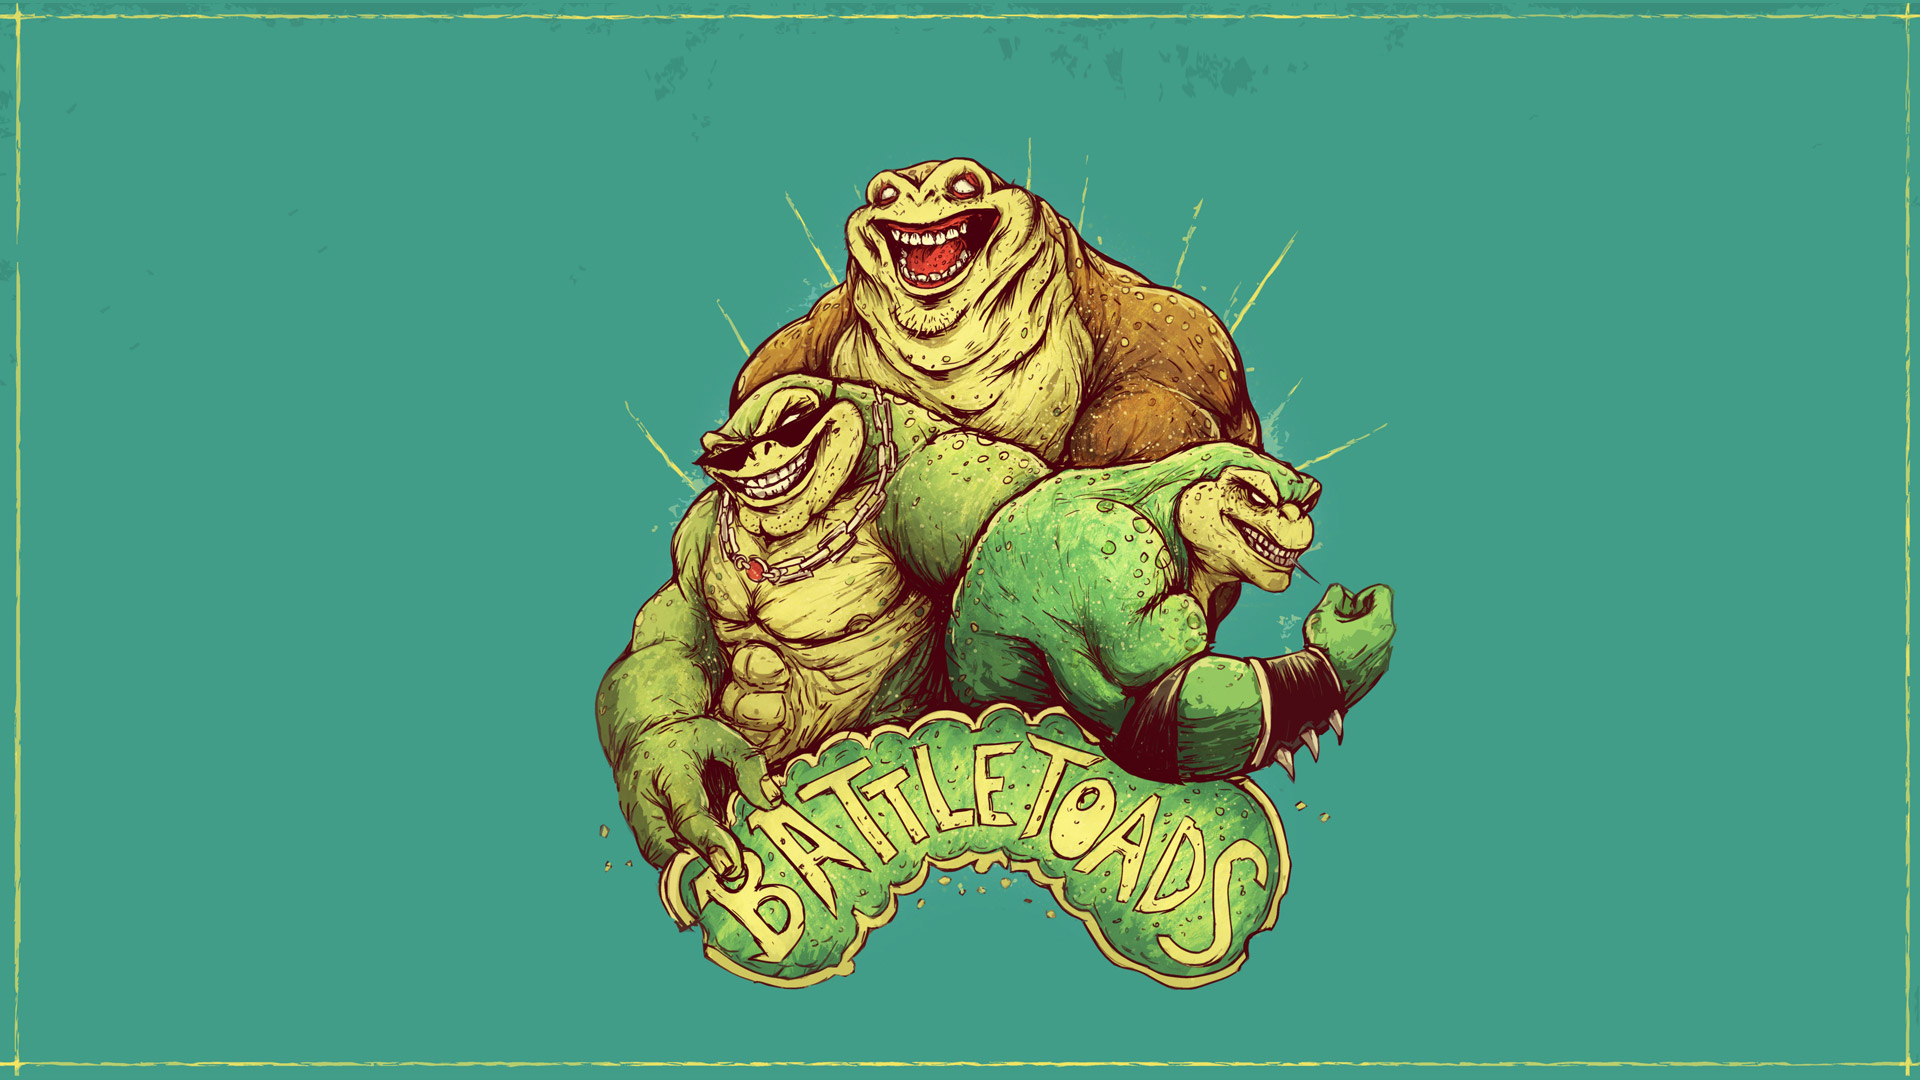 Battletoads (2019) Wallpaper in 1920x1080